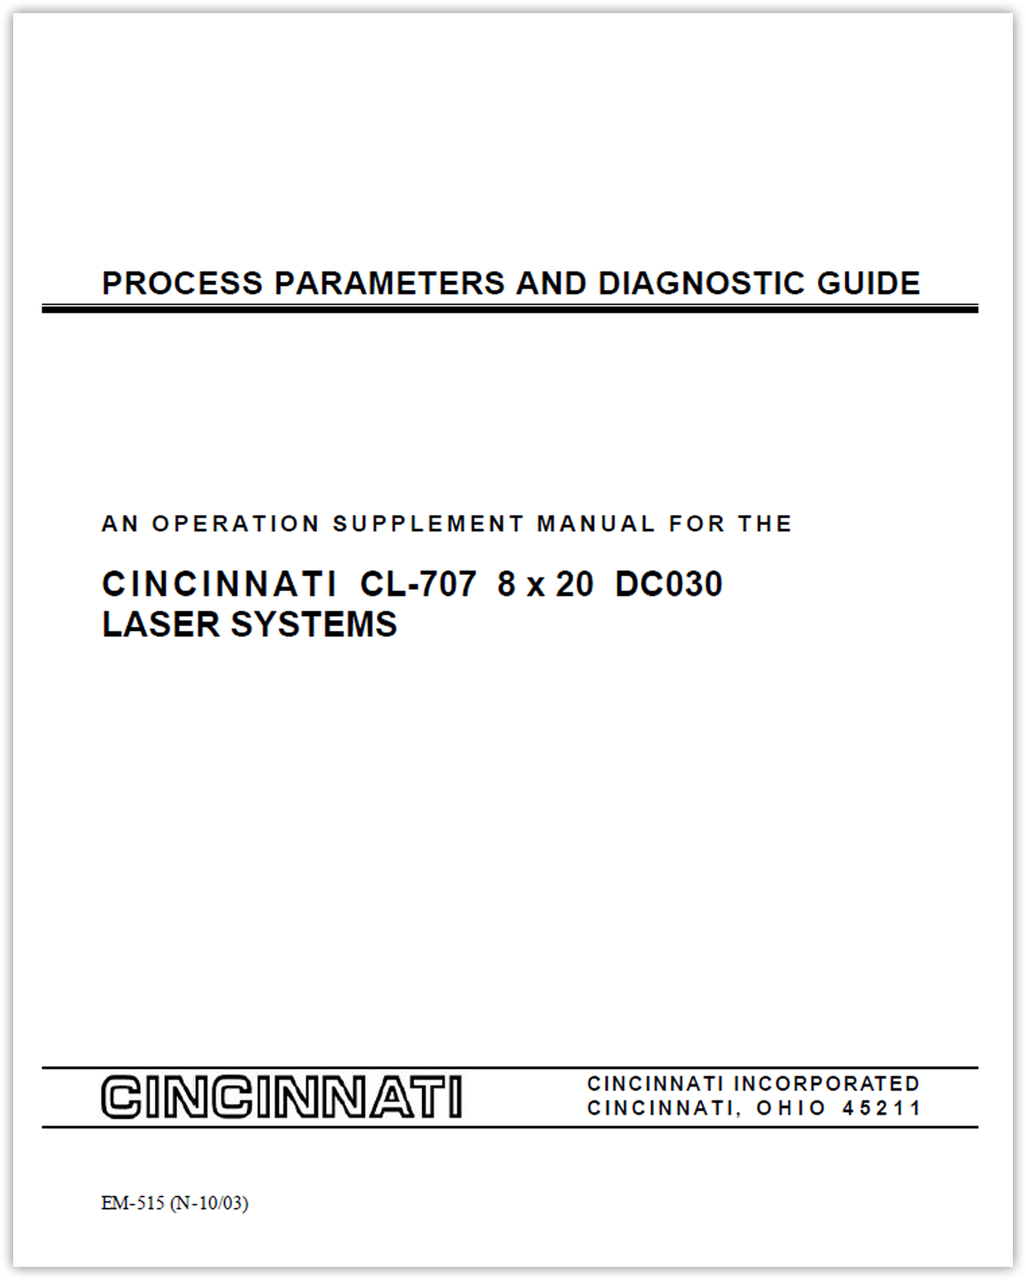 EM-515 (N-10-03) Process Parameters and Diagnostic Guide - An Operation Supplement Manual for the CINCINNATI CL-707 8x20 DC030 Laser Systems